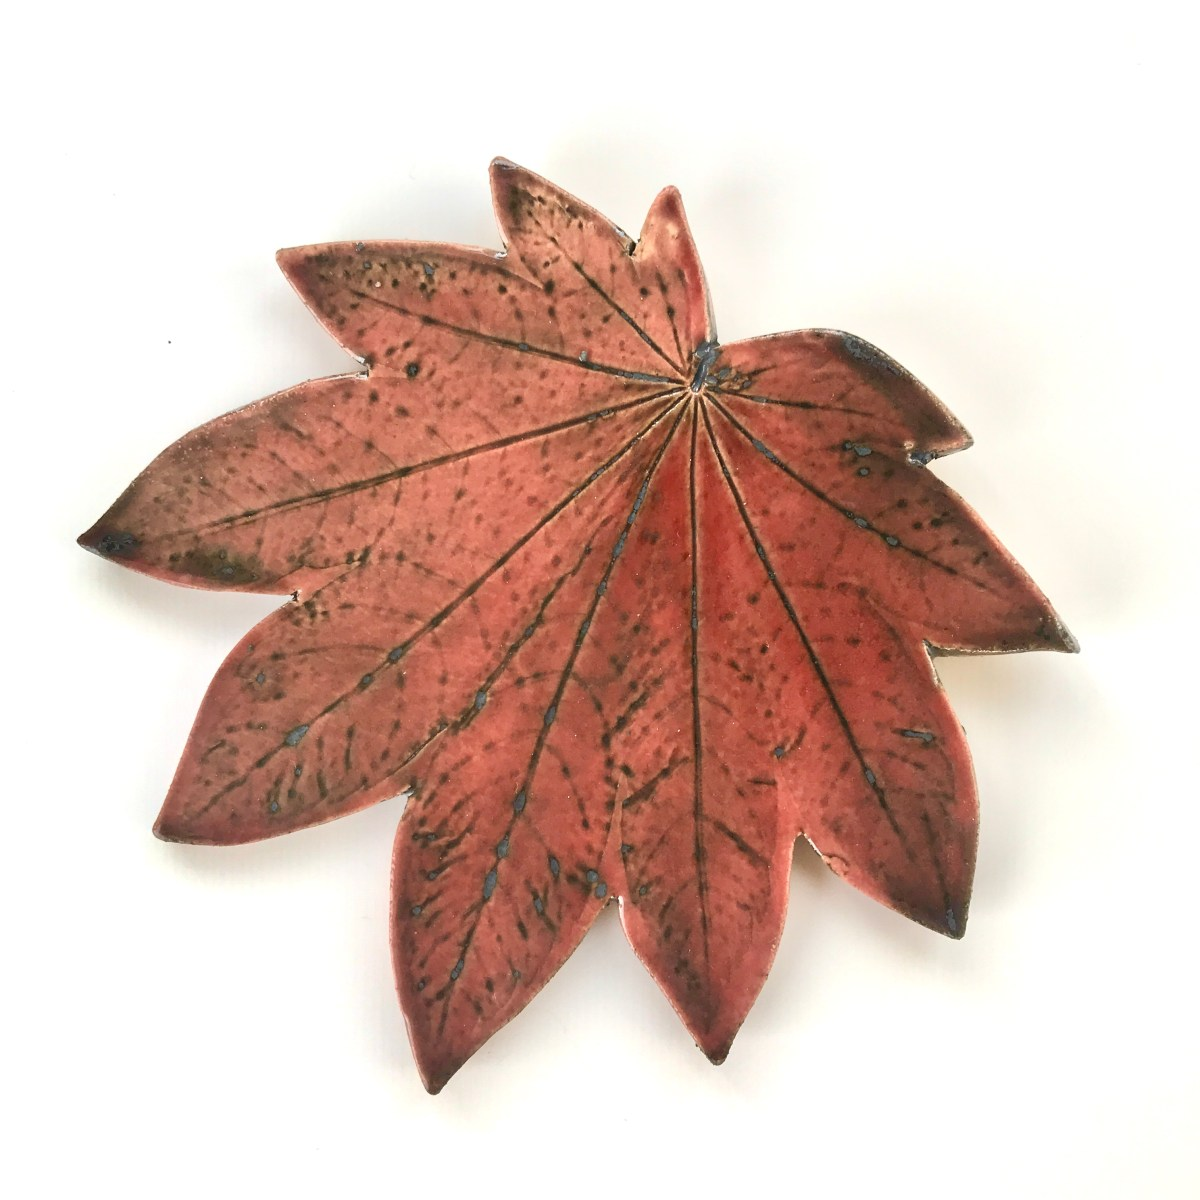 Fallen Leaf Ceramic Wall Art by Sonya Ceramic Art - Red Autumn Maple Leaf Design.jpg